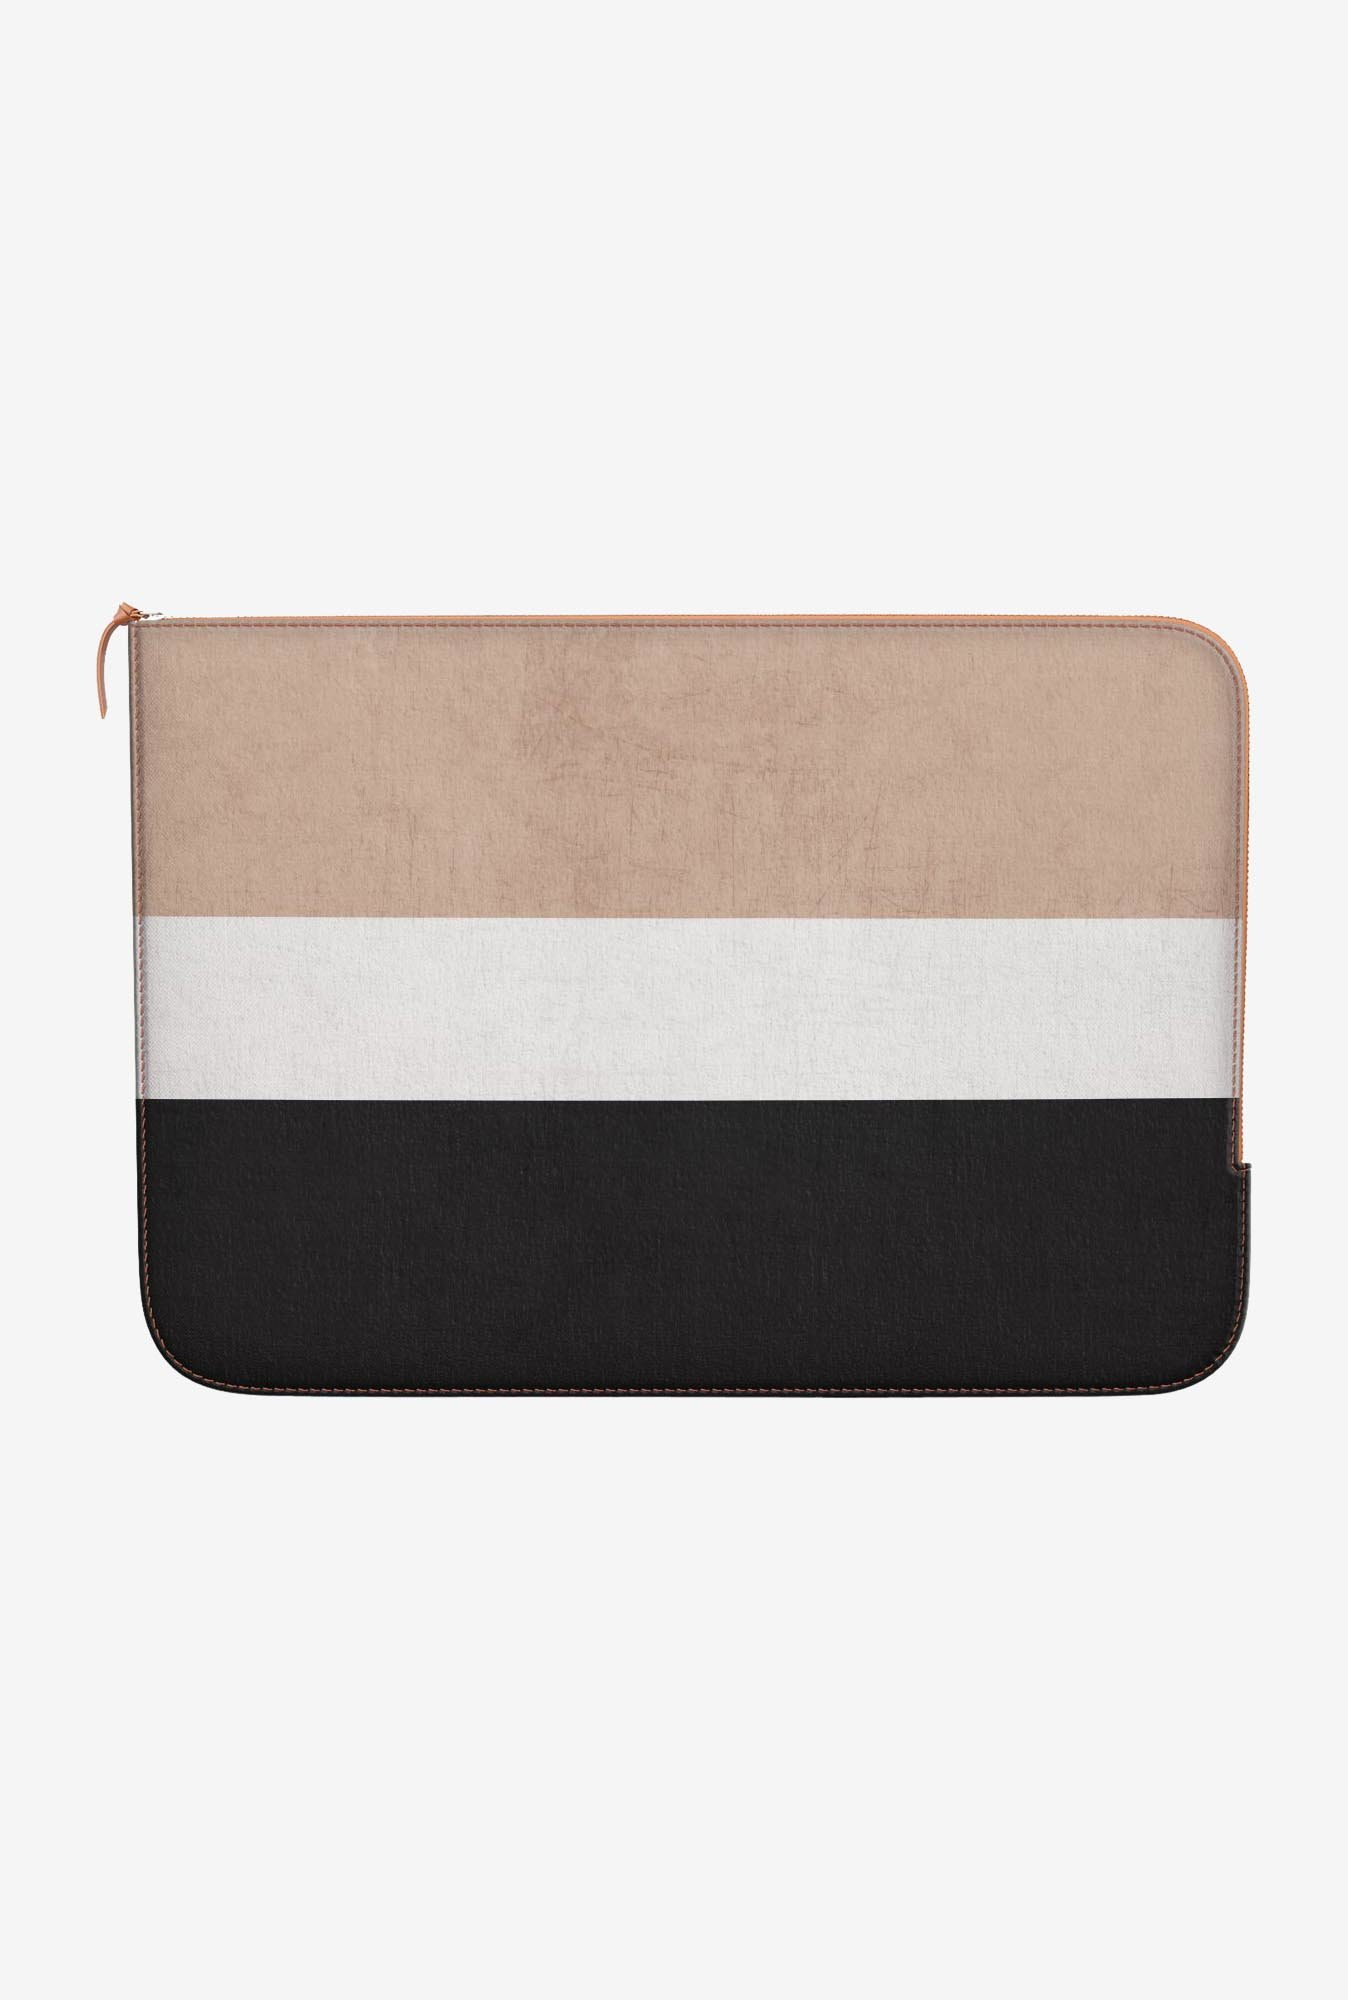 DailyObjects Natural MacBook Air 11 Zippered Sleeve